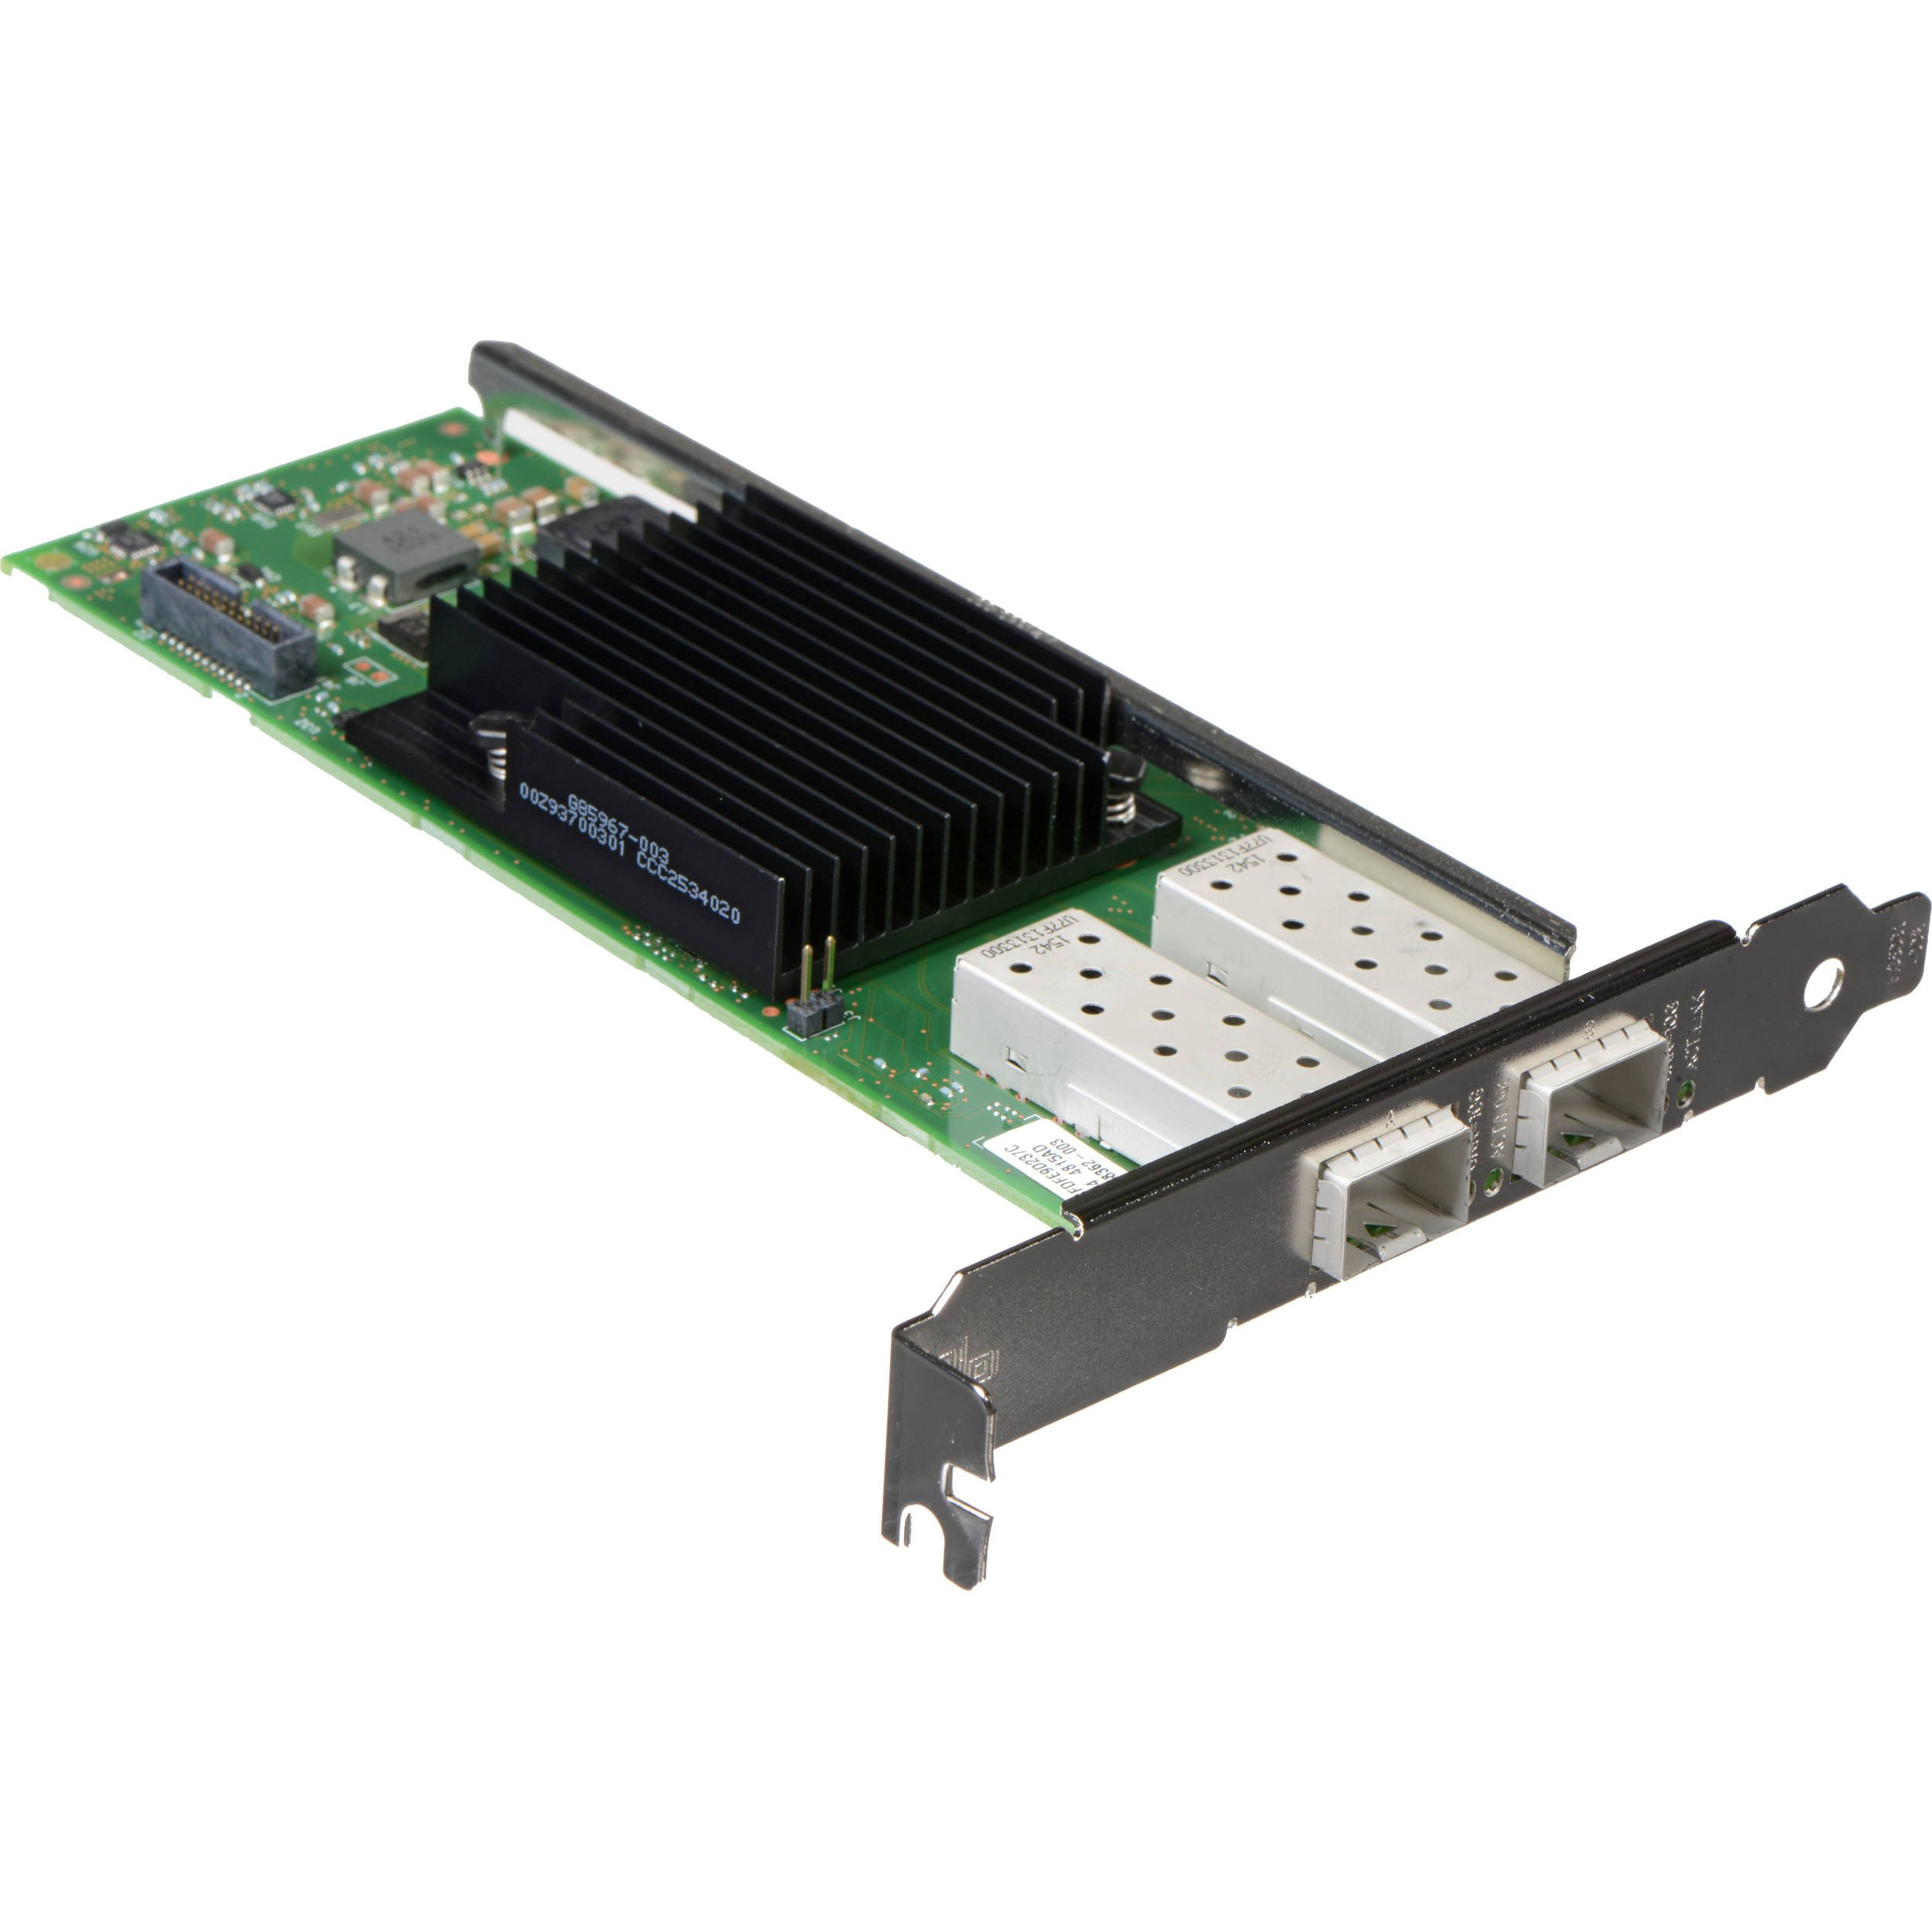 Intel Ethernet Converged X710-DA2 Network Adapter (X710DA2) by Intel